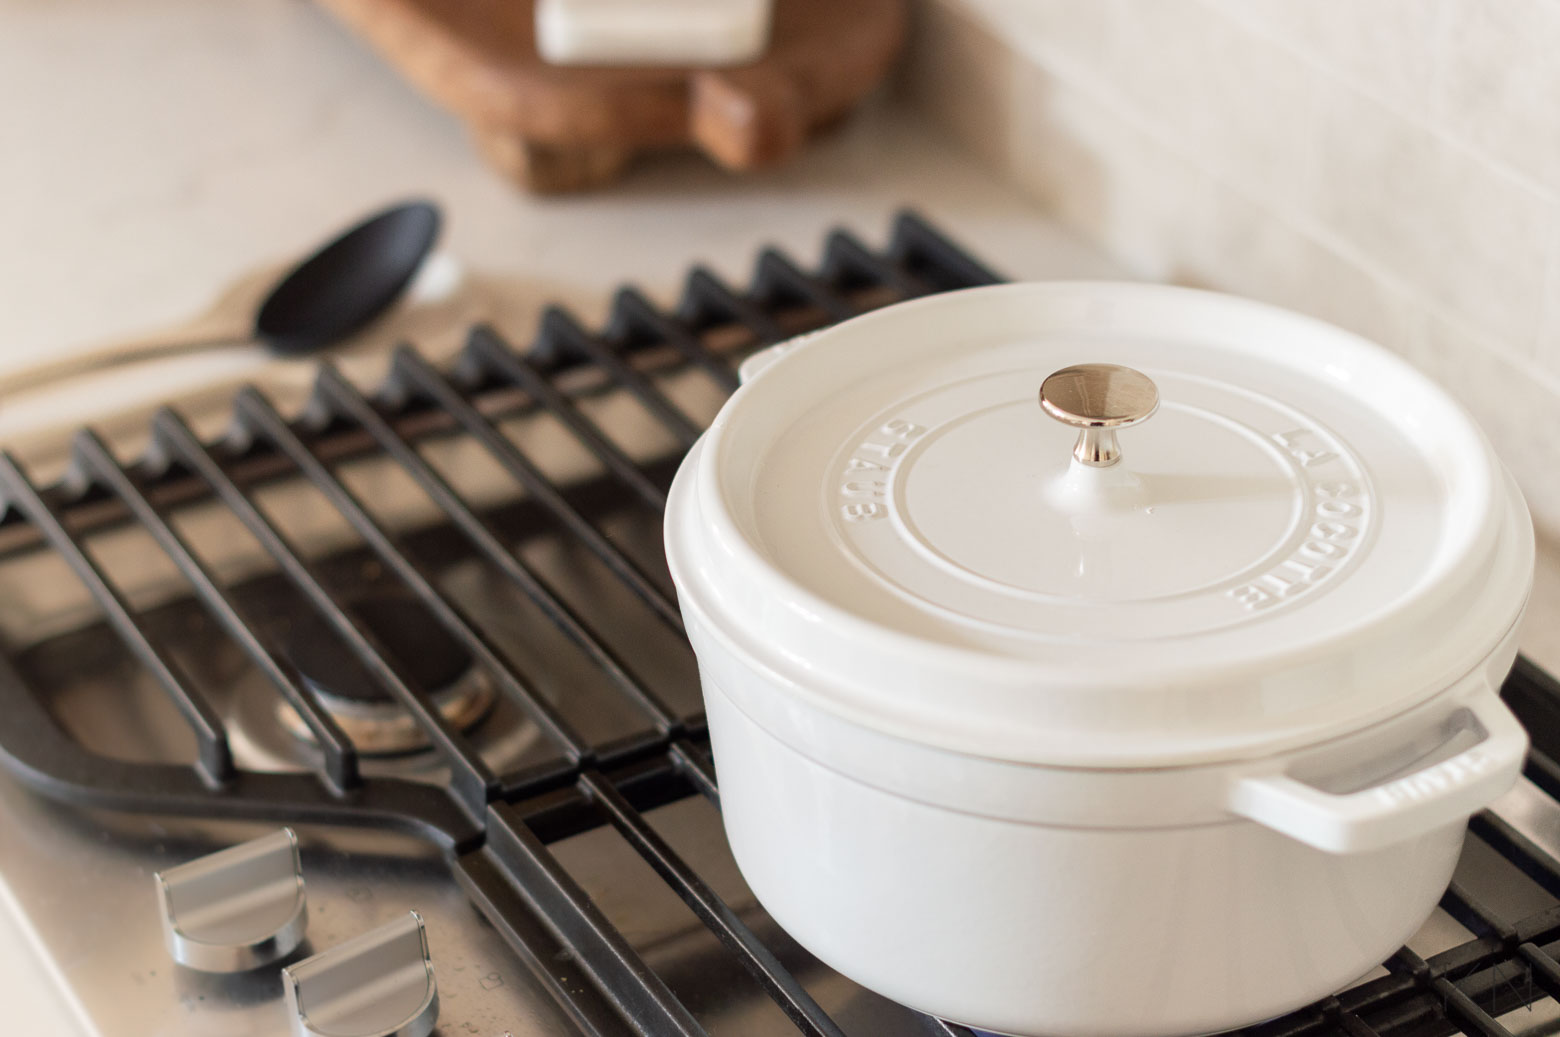 Investment Bakeware and Best Cocottes